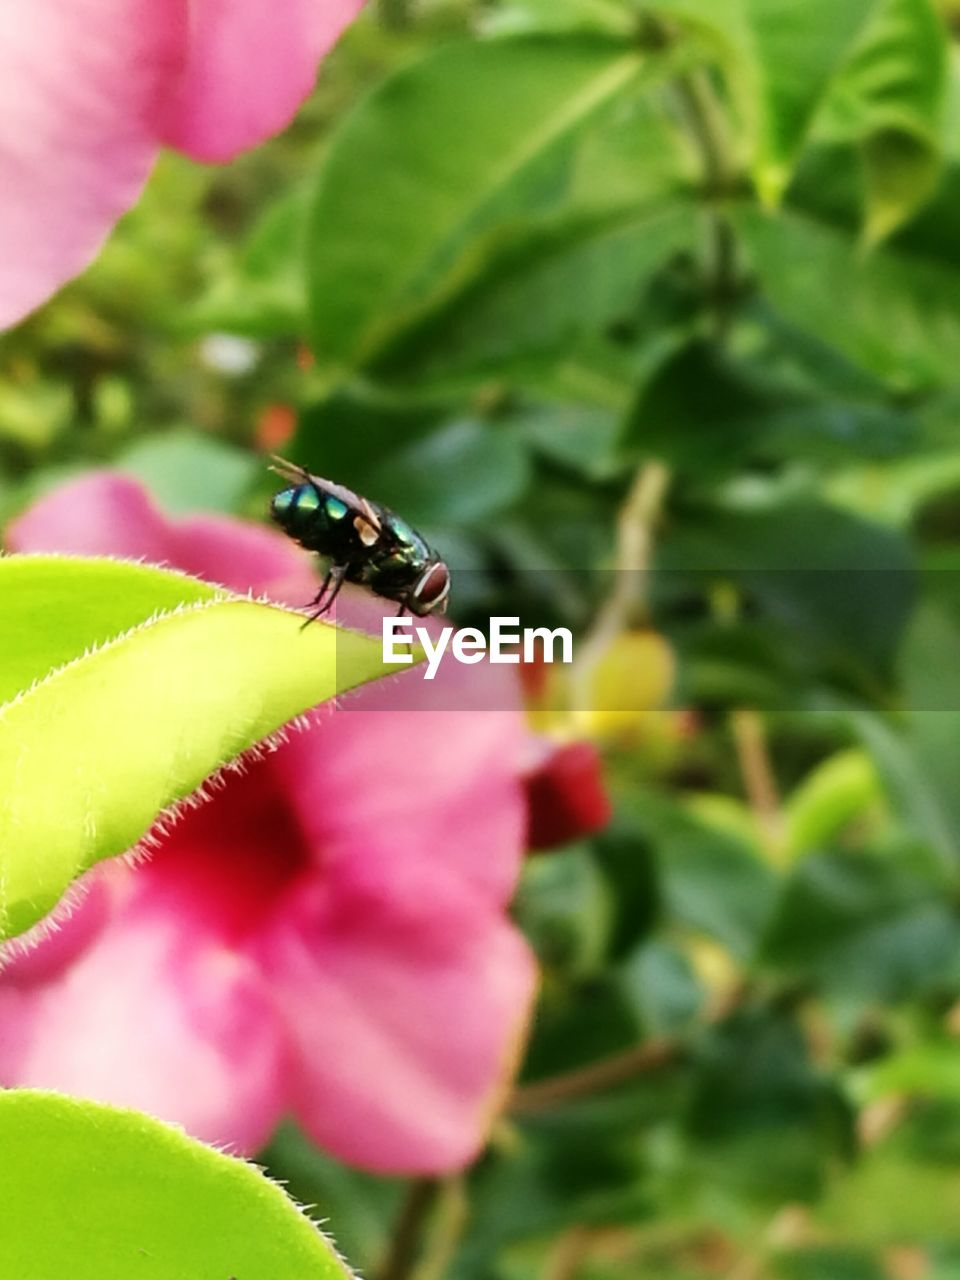 insect, one animal, animals in the wild, animal themes, green color, leaf, nature, close-up, growth, plant, animal wildlife, outdoors, day, beauty in nature, focus on foreground, flower, no people, fragility, freshness, flower head